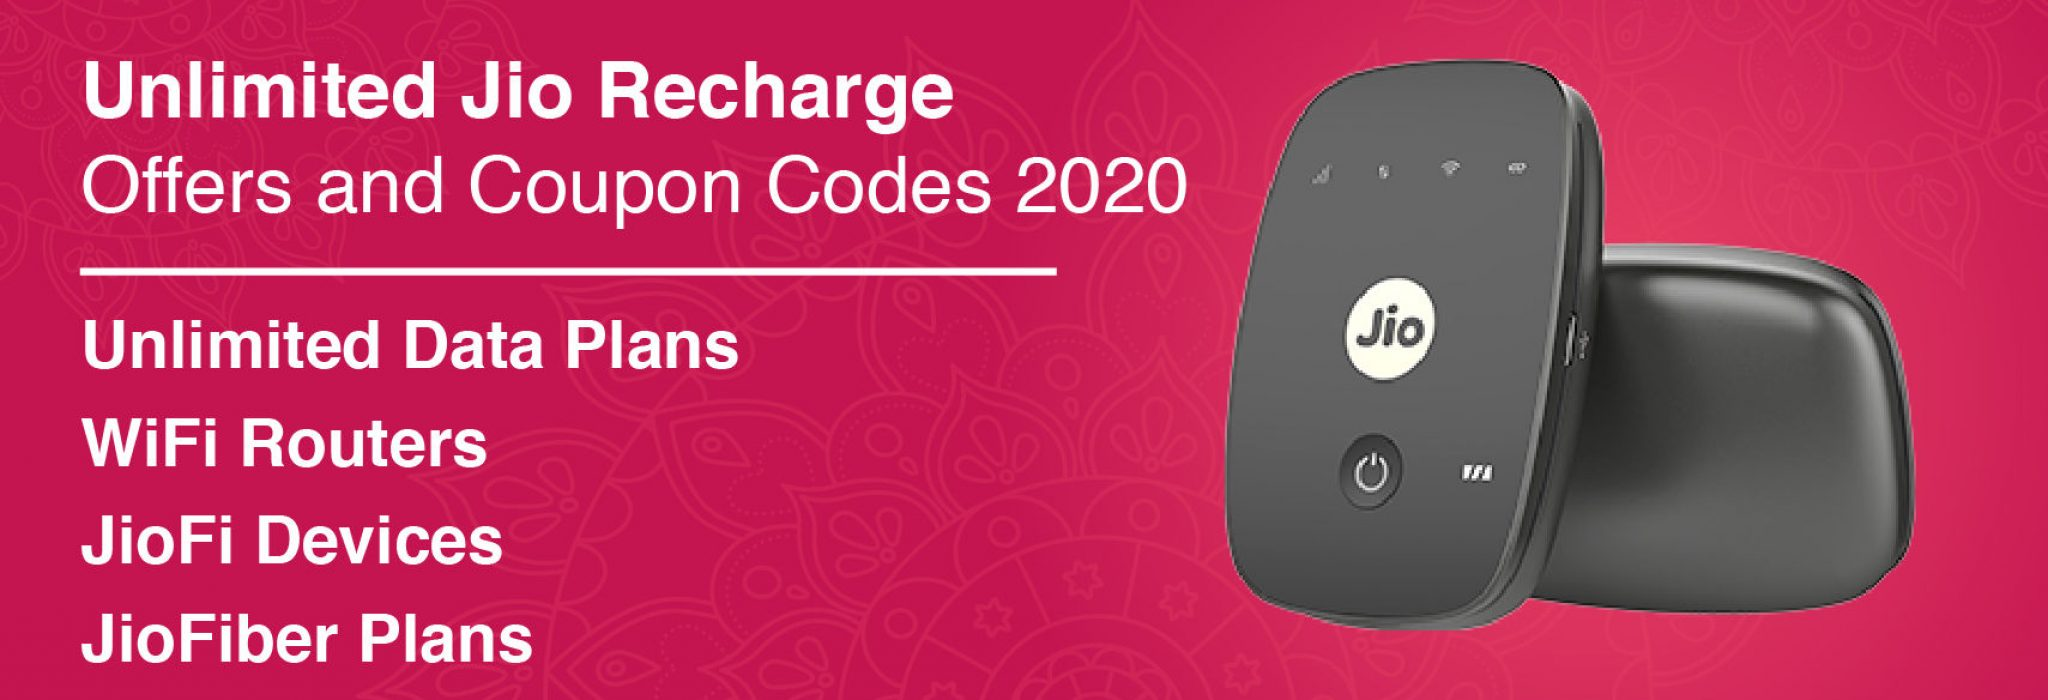 Jio_Recharge_Plans_2020x2-01_1596732764